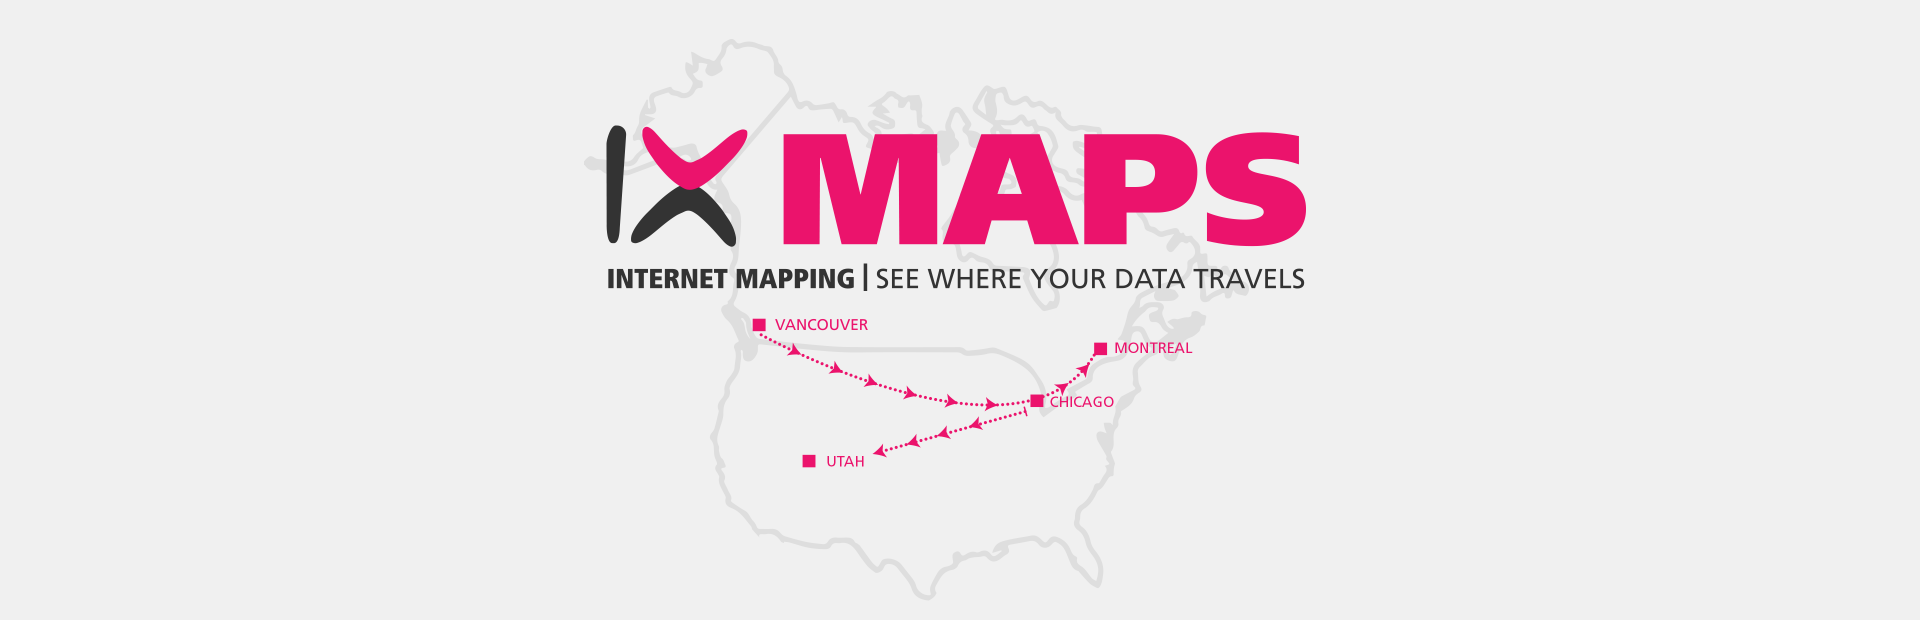 IXmaps: Know where your data travels